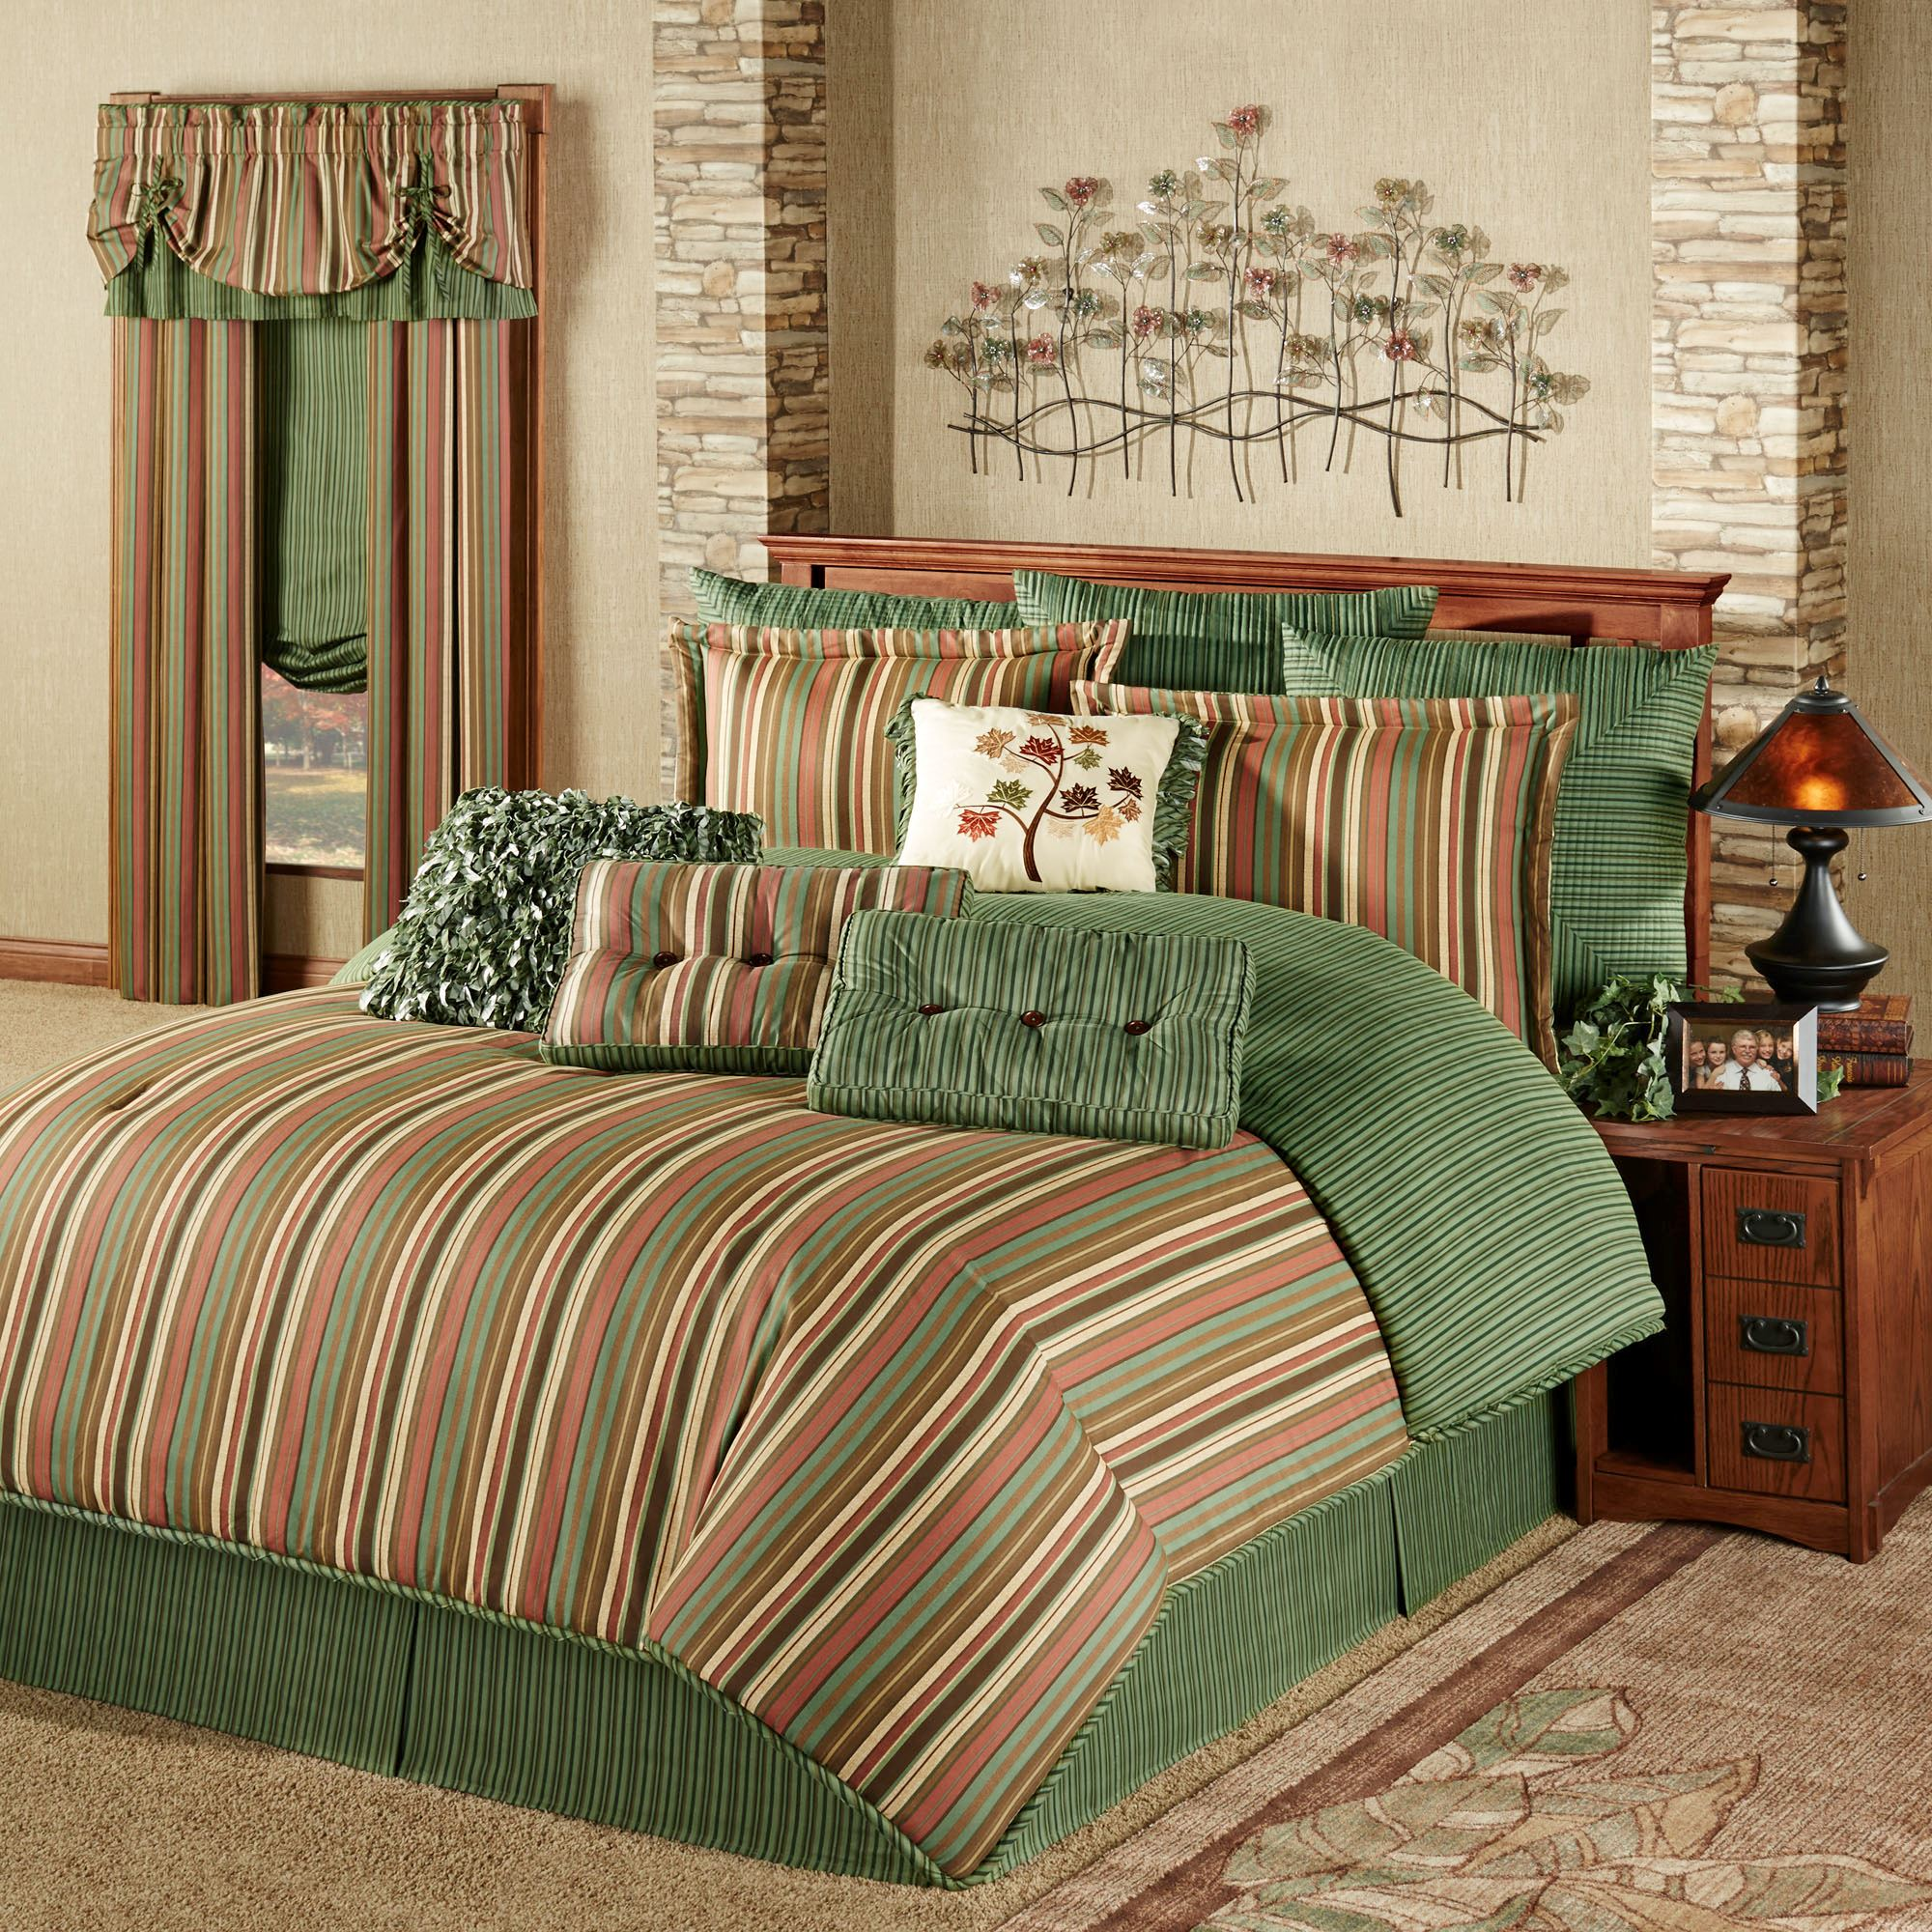 tree norwich p damask comforter striped zi rose mushroom dillards set